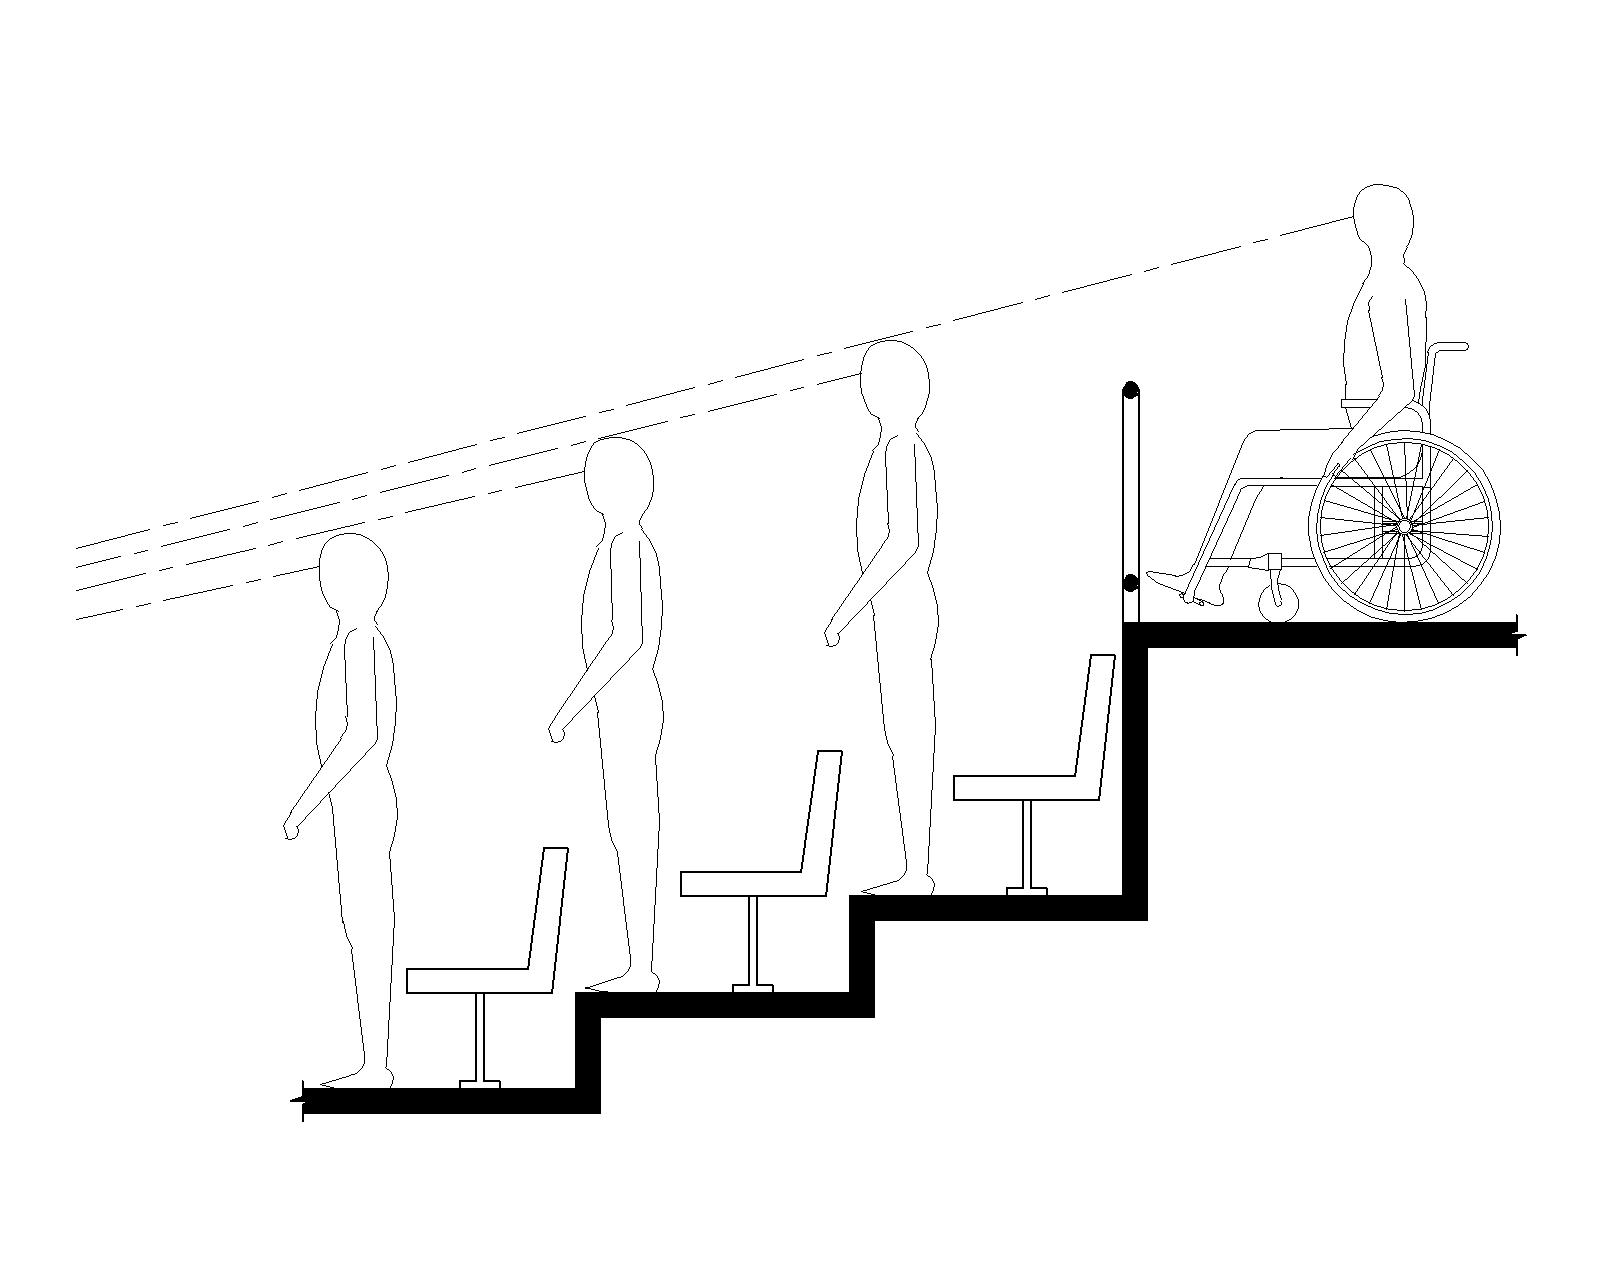 Elevation drawing shows a person using a wheelchair on an upper level of tiered seating elevated sufficiently to have a line of sight over the heads of spectators standing in front.